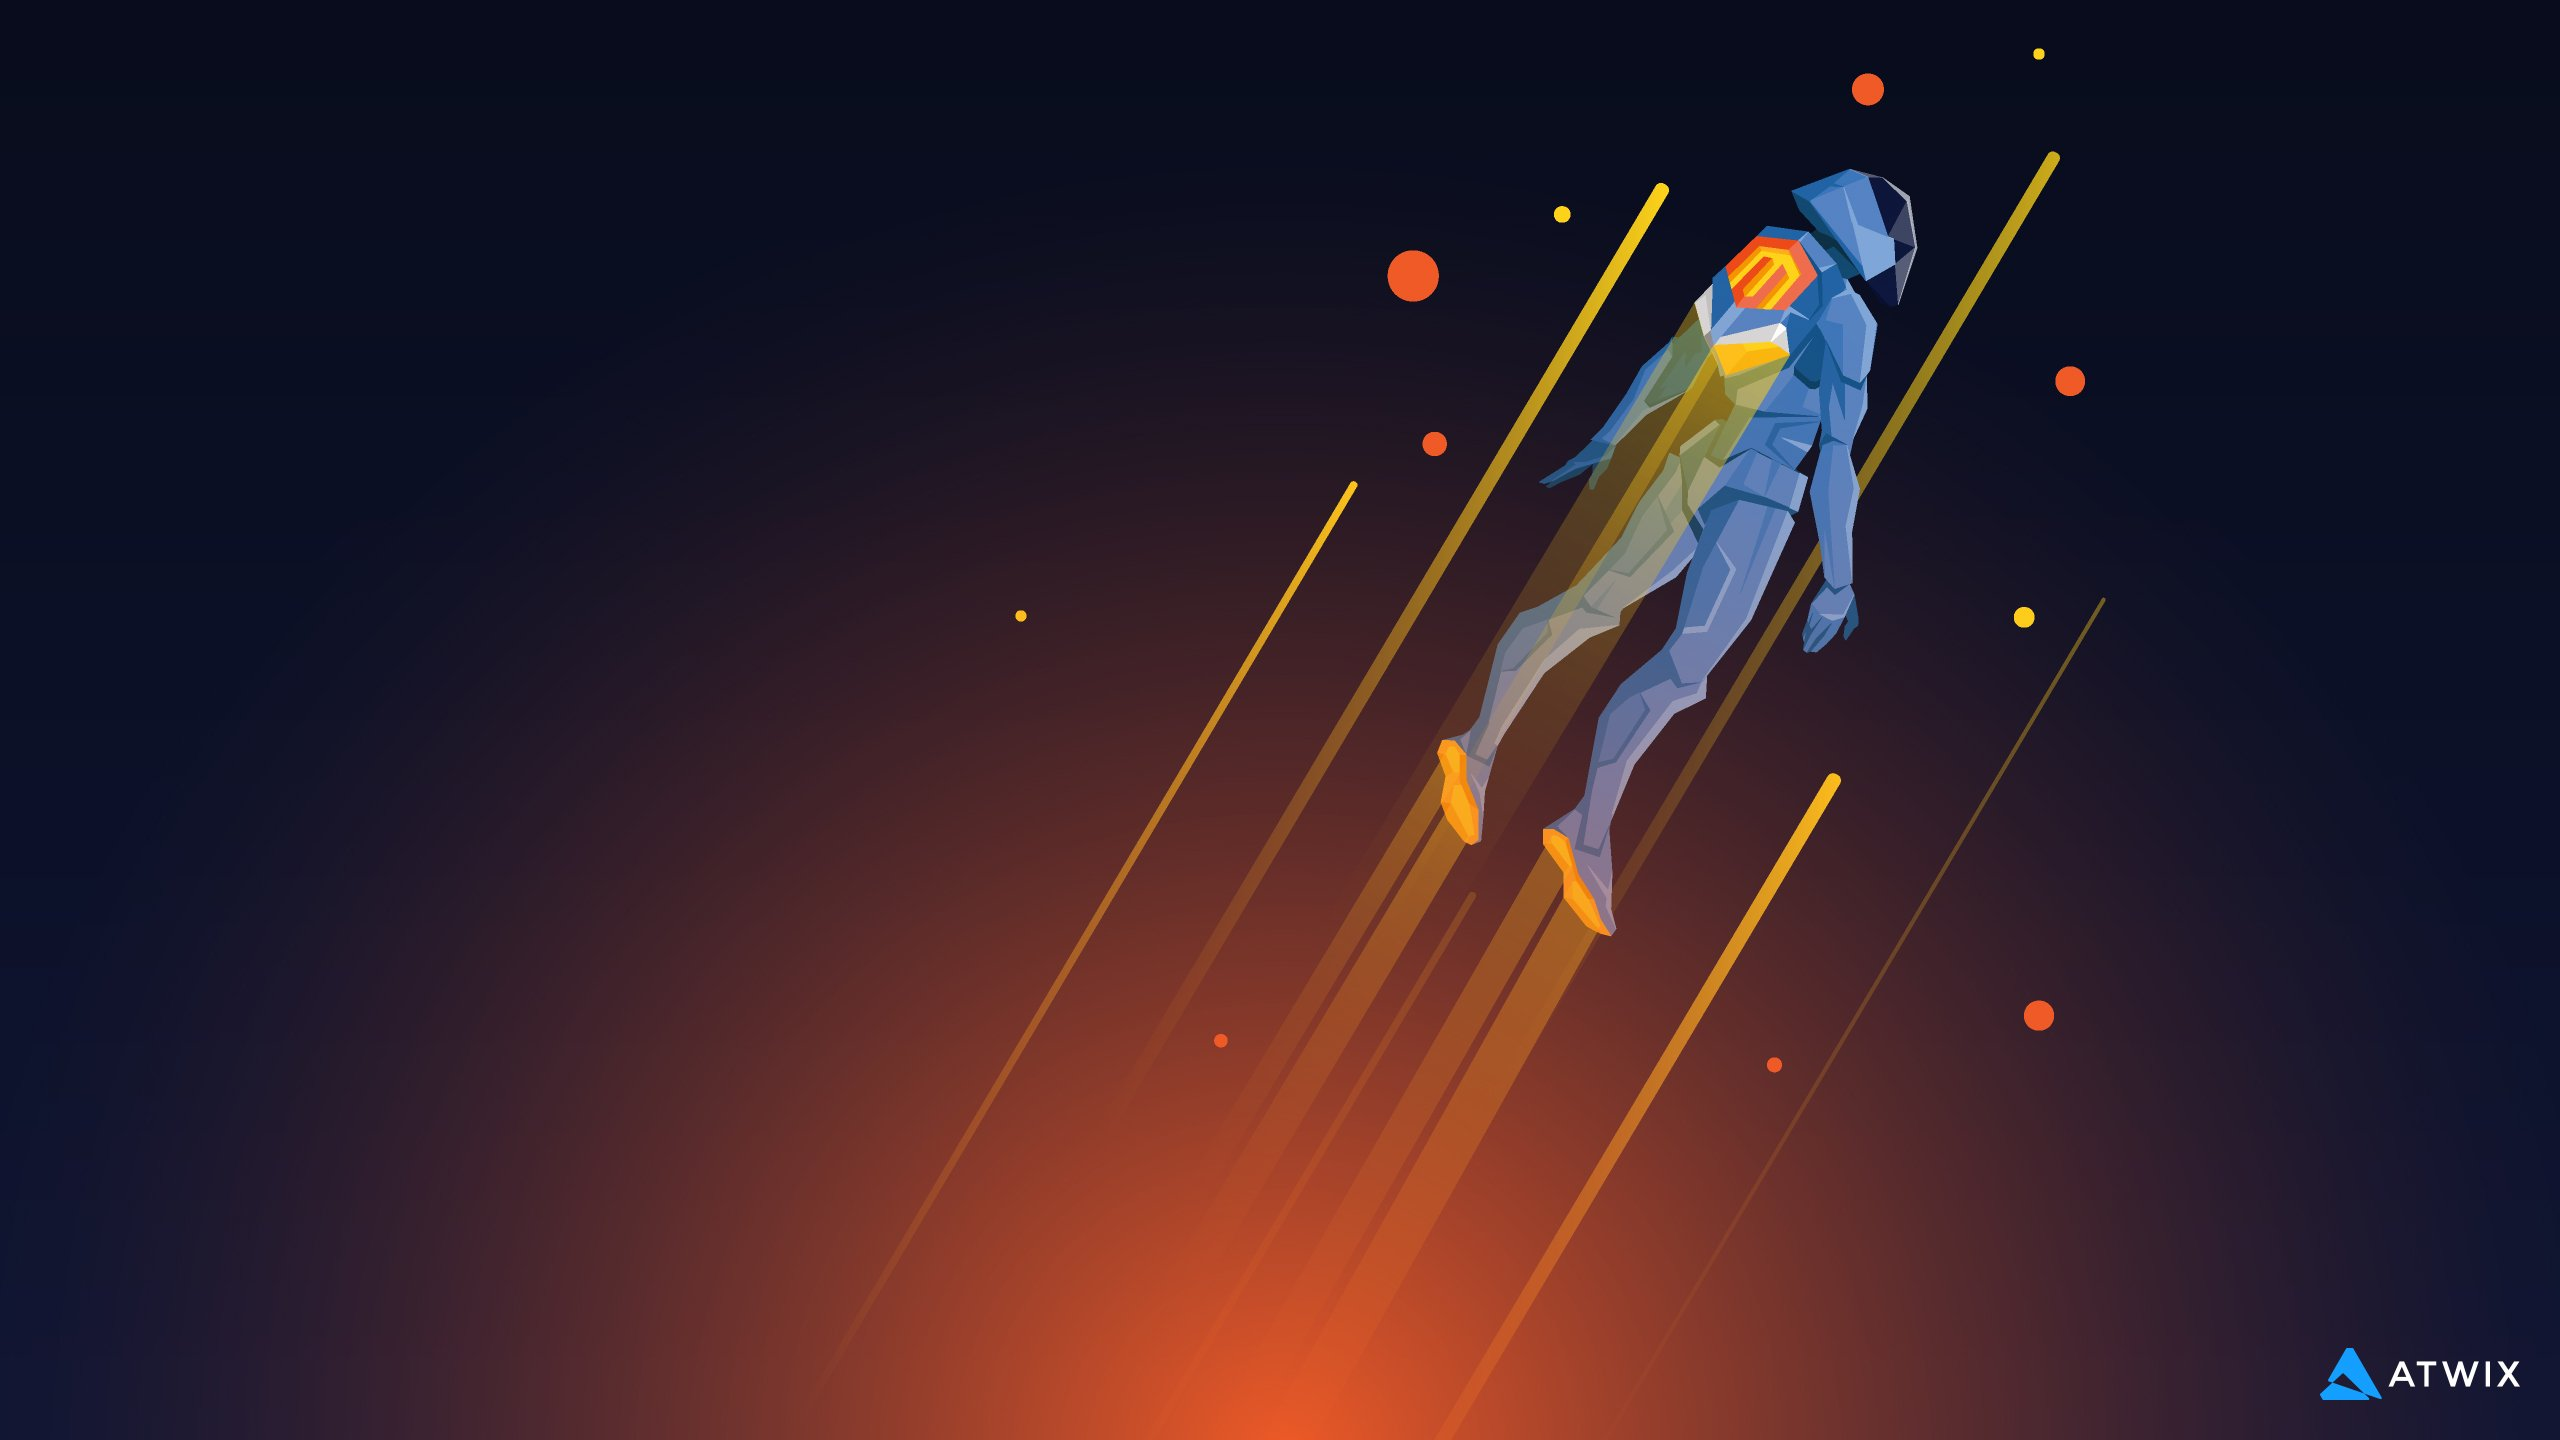 Outer space magento wallpapers atwix - Space 2560 x 1440 ...